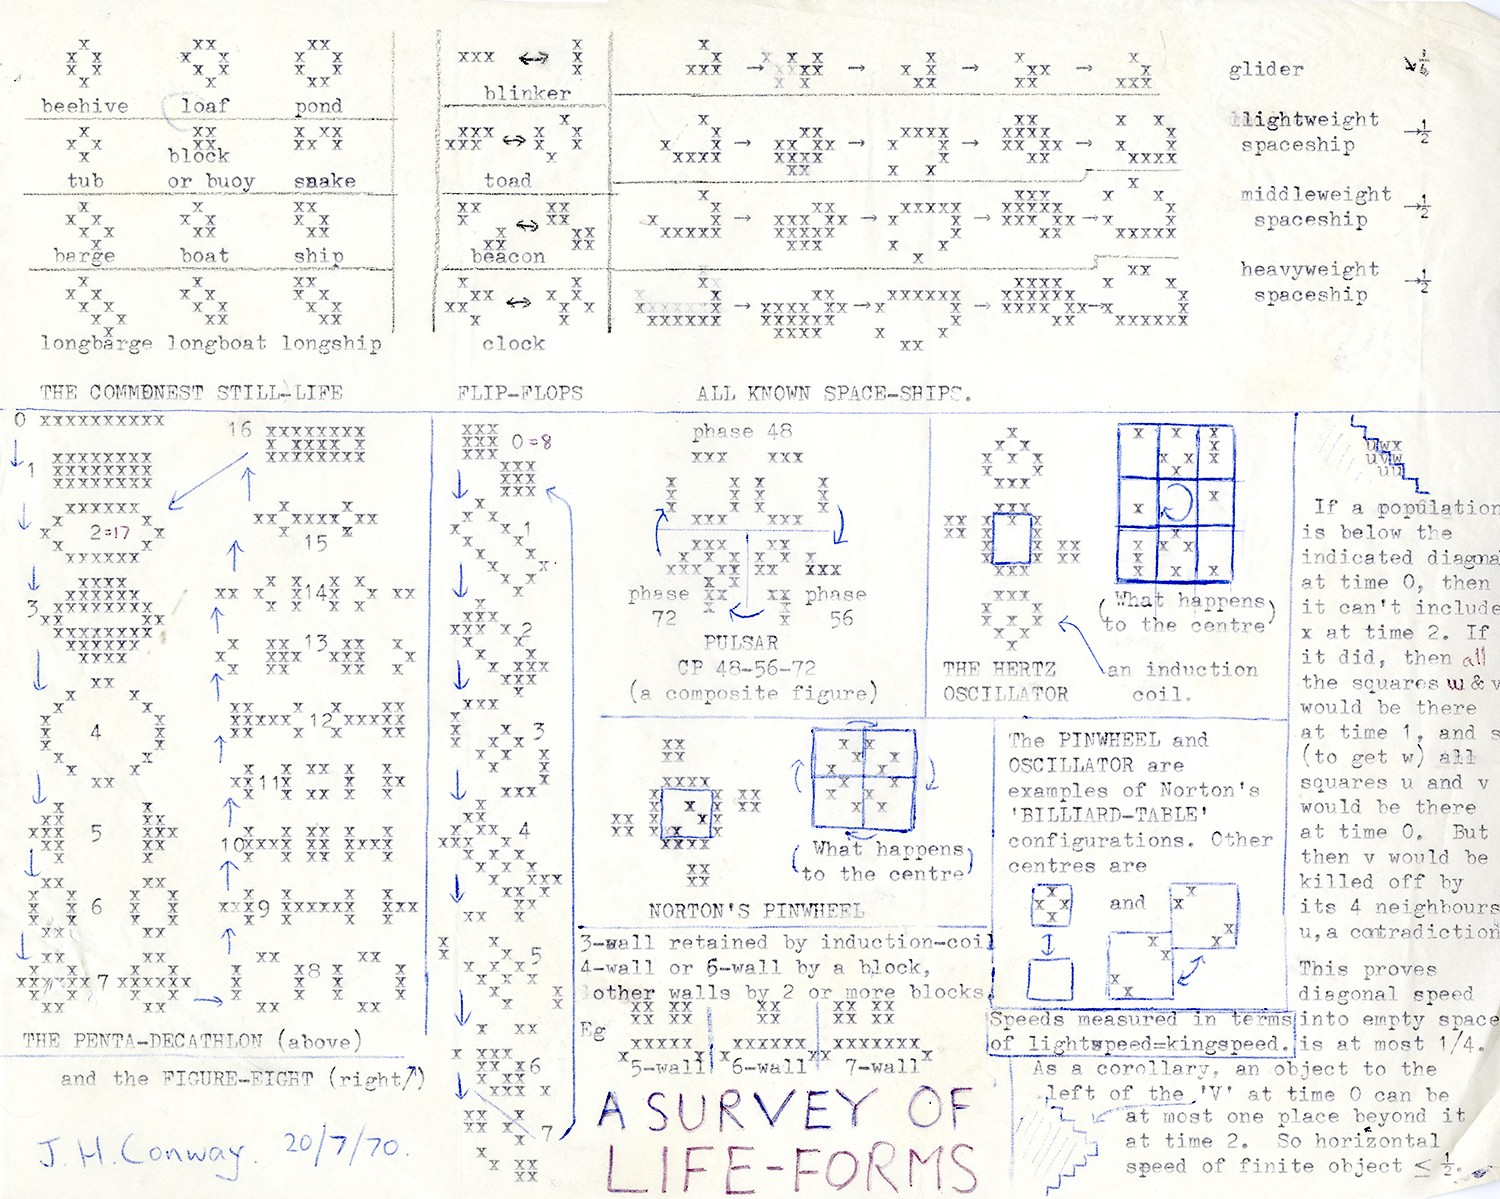 A SURVEY OF LIFE-FORMS - J.H. Conway 20/7/70